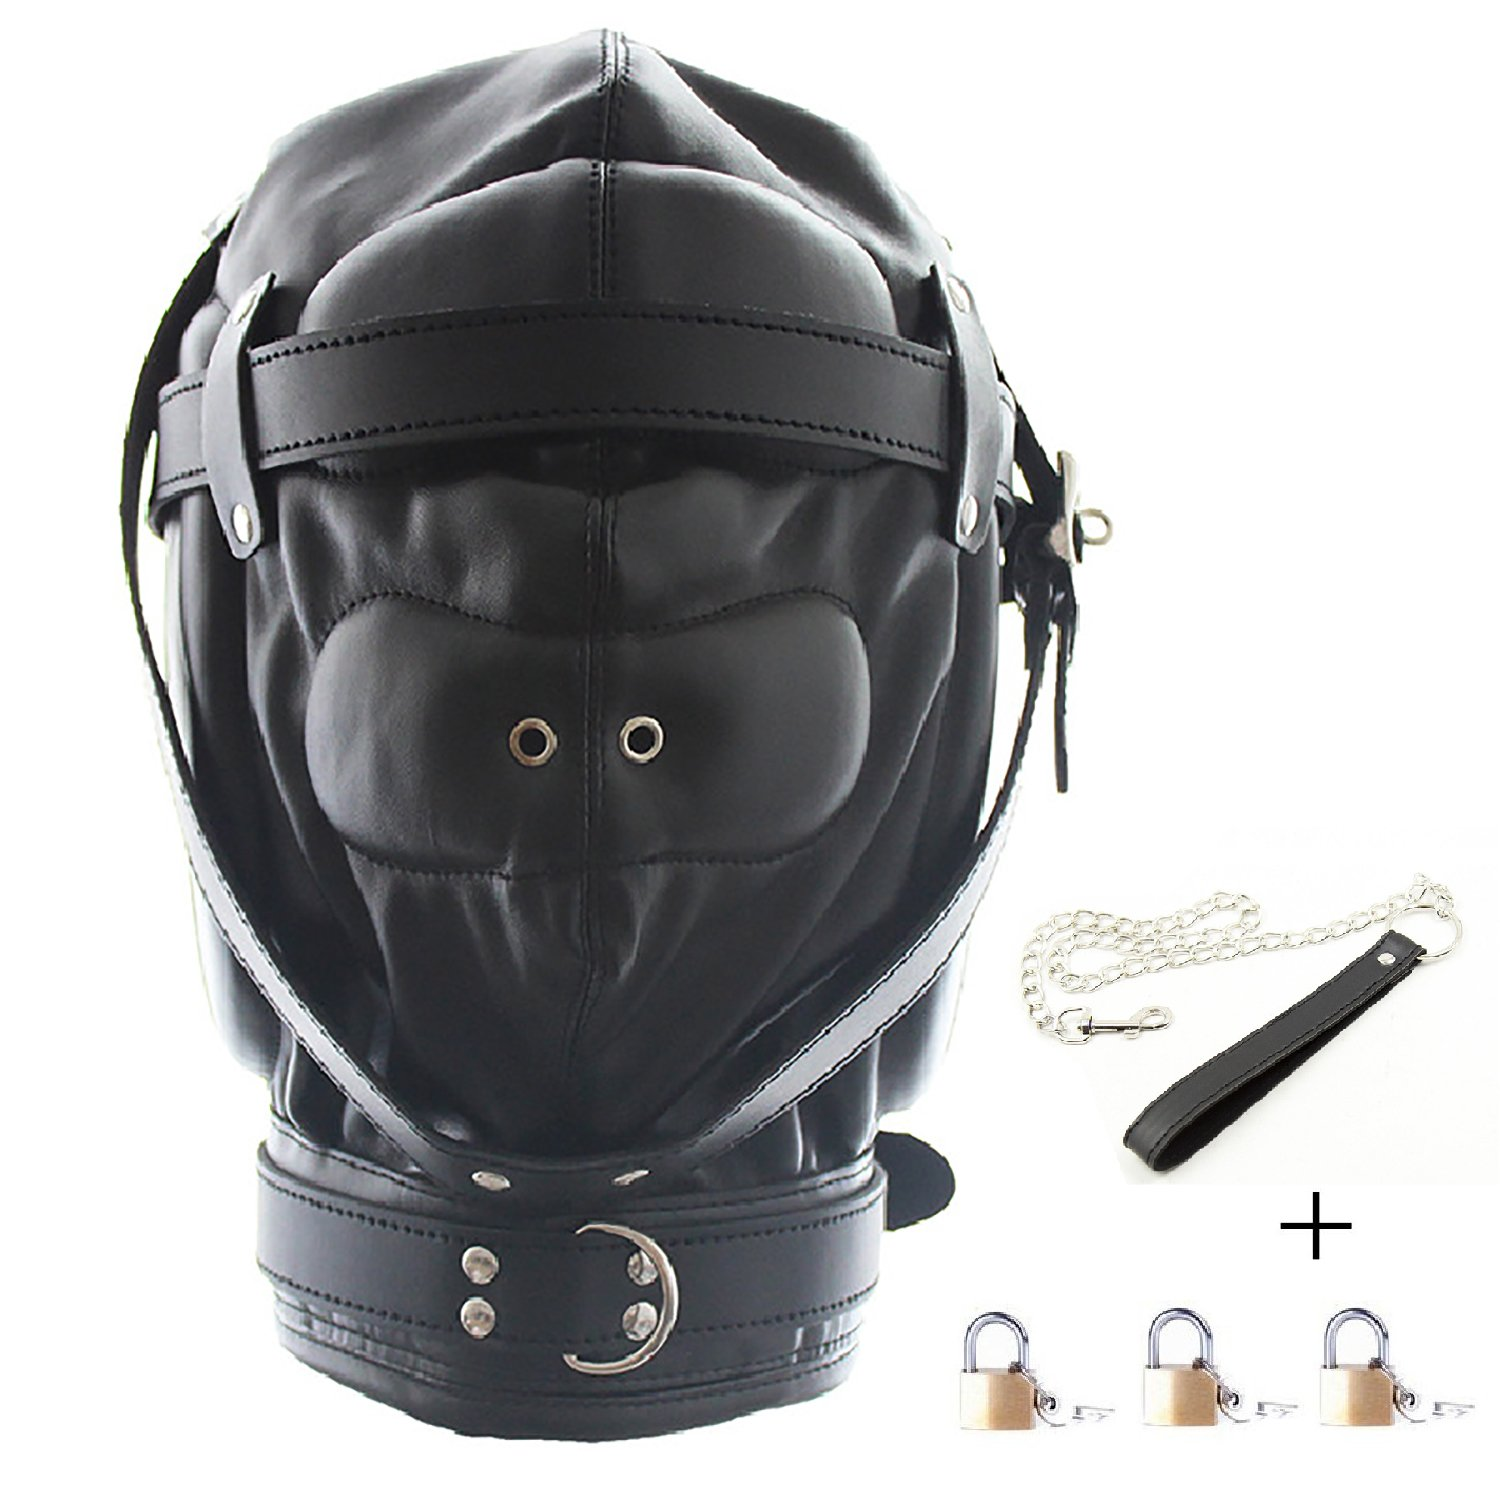 Leather Costume Head Mask Hood - Black Sealed Soft Leather Full Face Mask Nose Holes Breathable Lacing Harness Unisex Cosplay Headgear Mask (Padlock 3 & Pulling Rope 1)